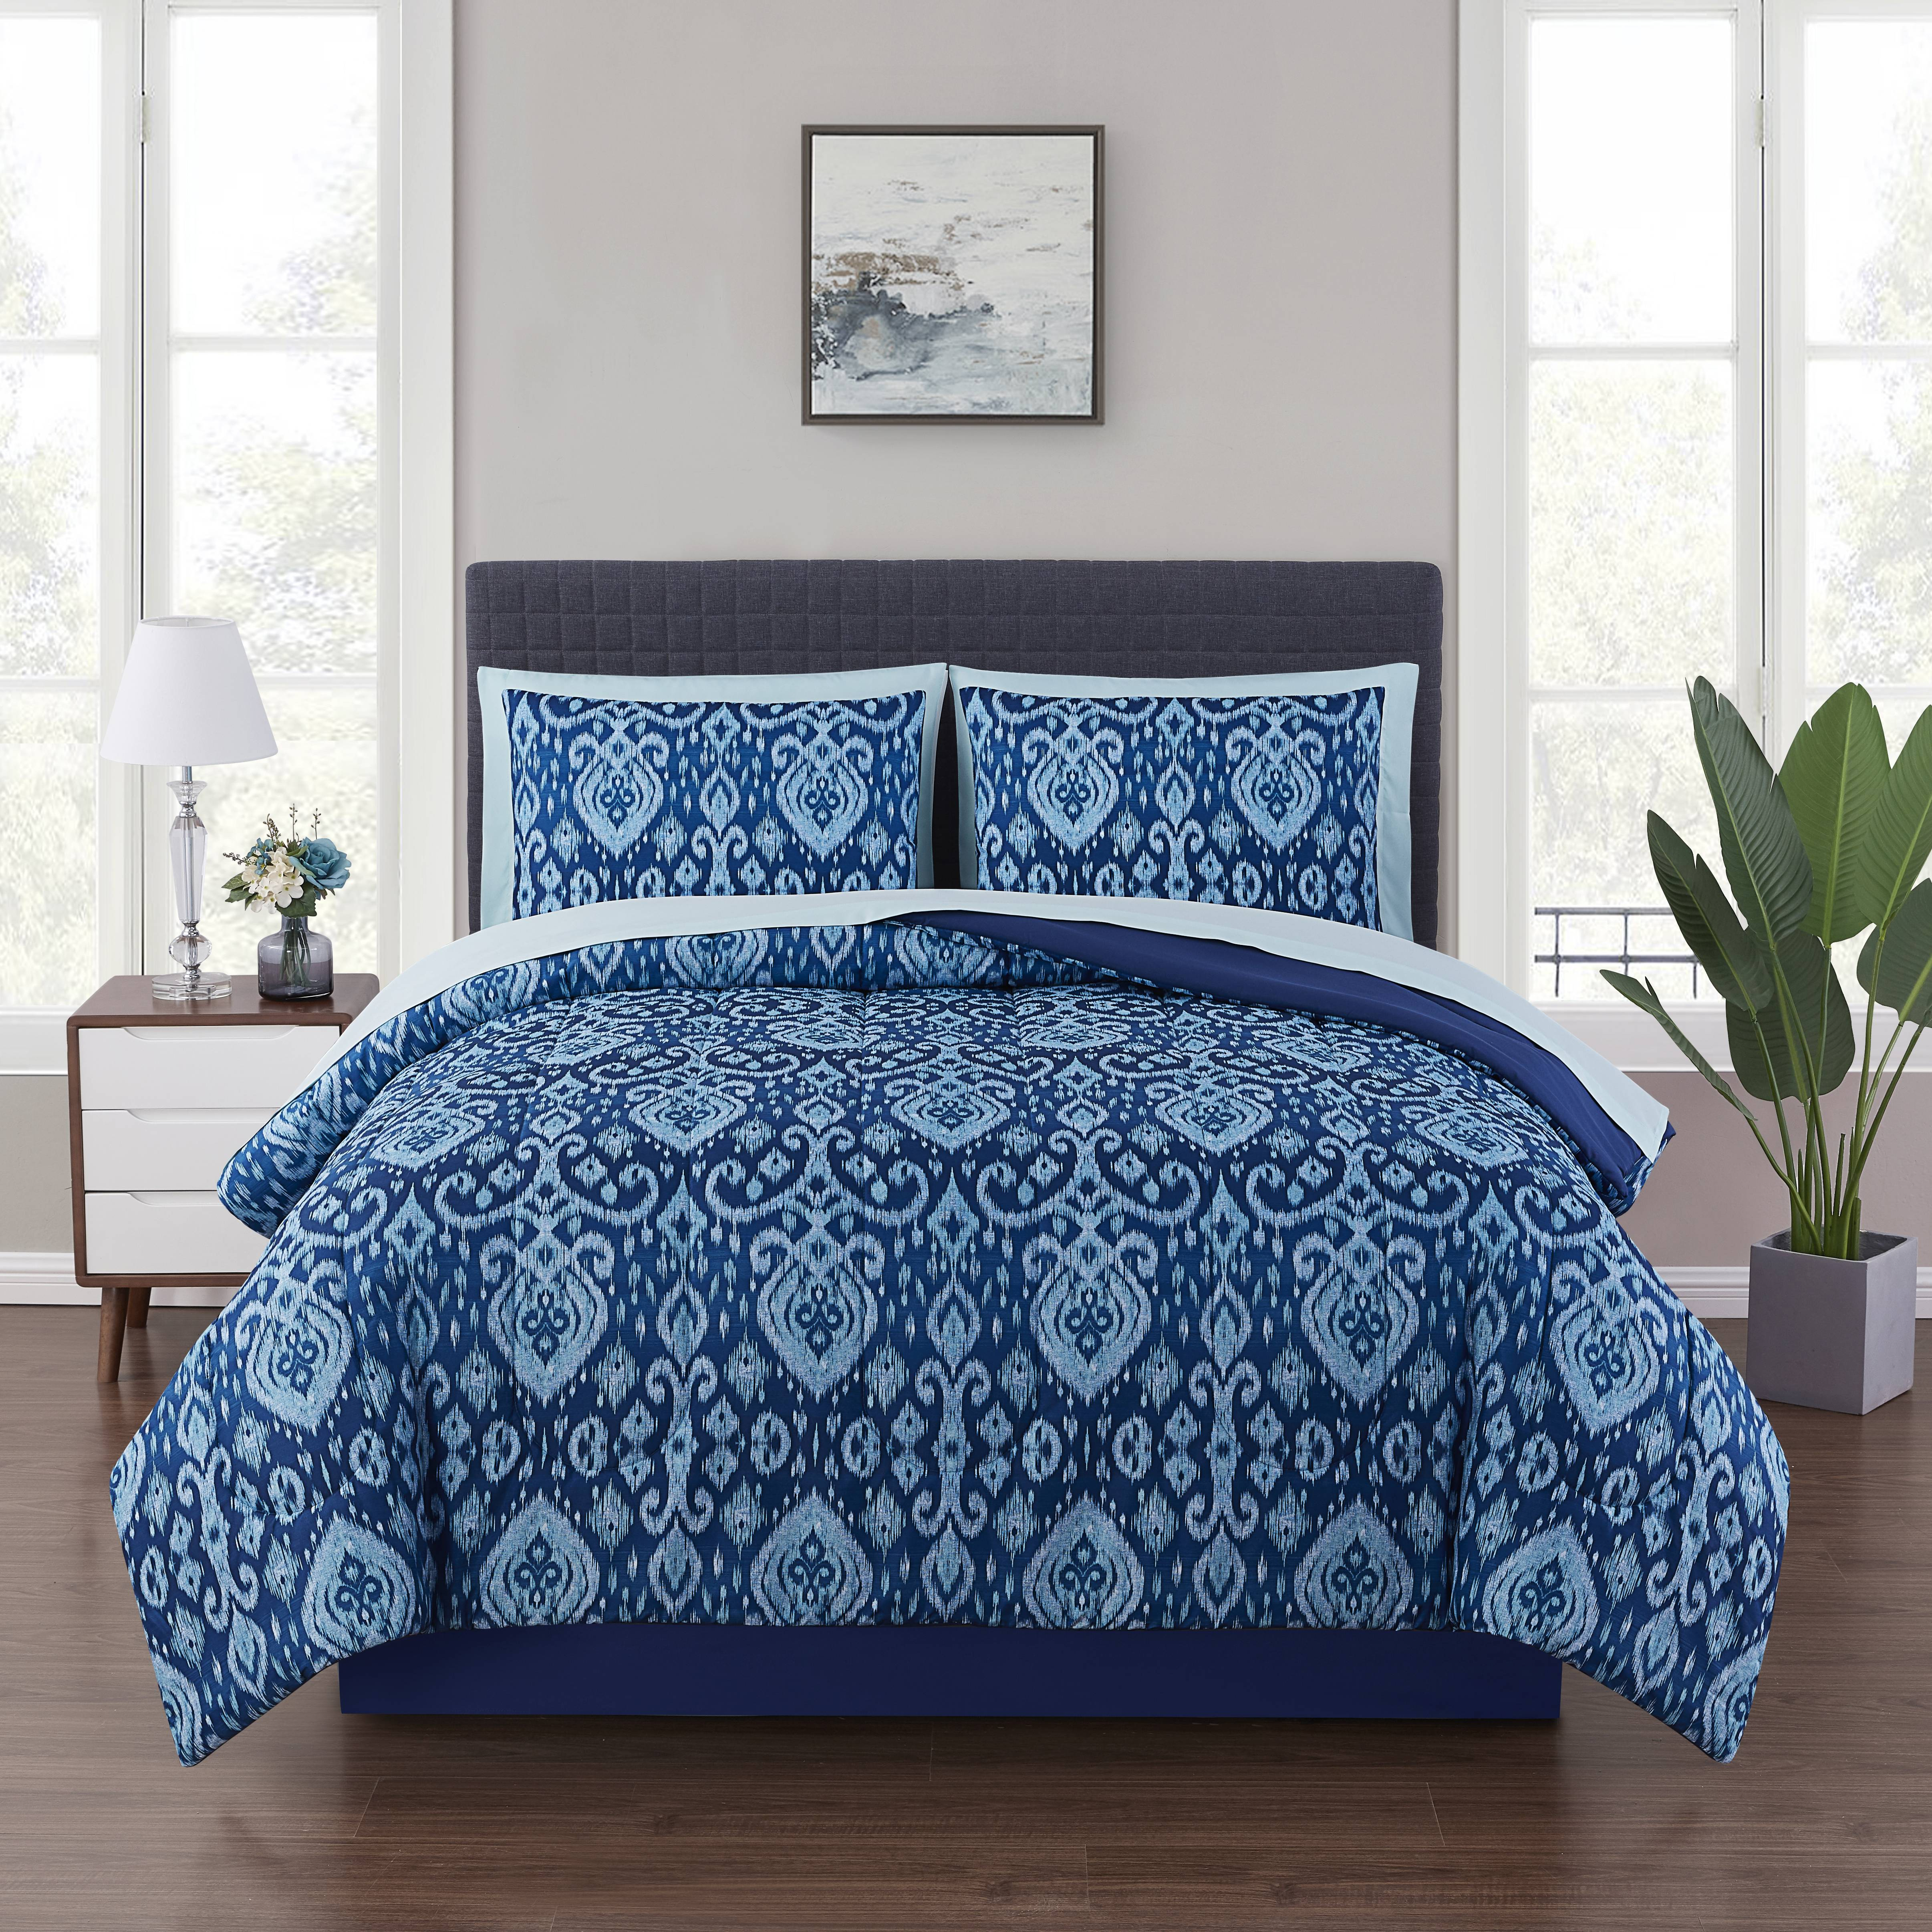 Picture of: Bettuberwurfe Tagesdecken Twin Queen King Bed Navy Blue White Solid Hotel 8 Pc Quilt Sheet Set Coverlet Mobel Wohnen A2privathospital Dk